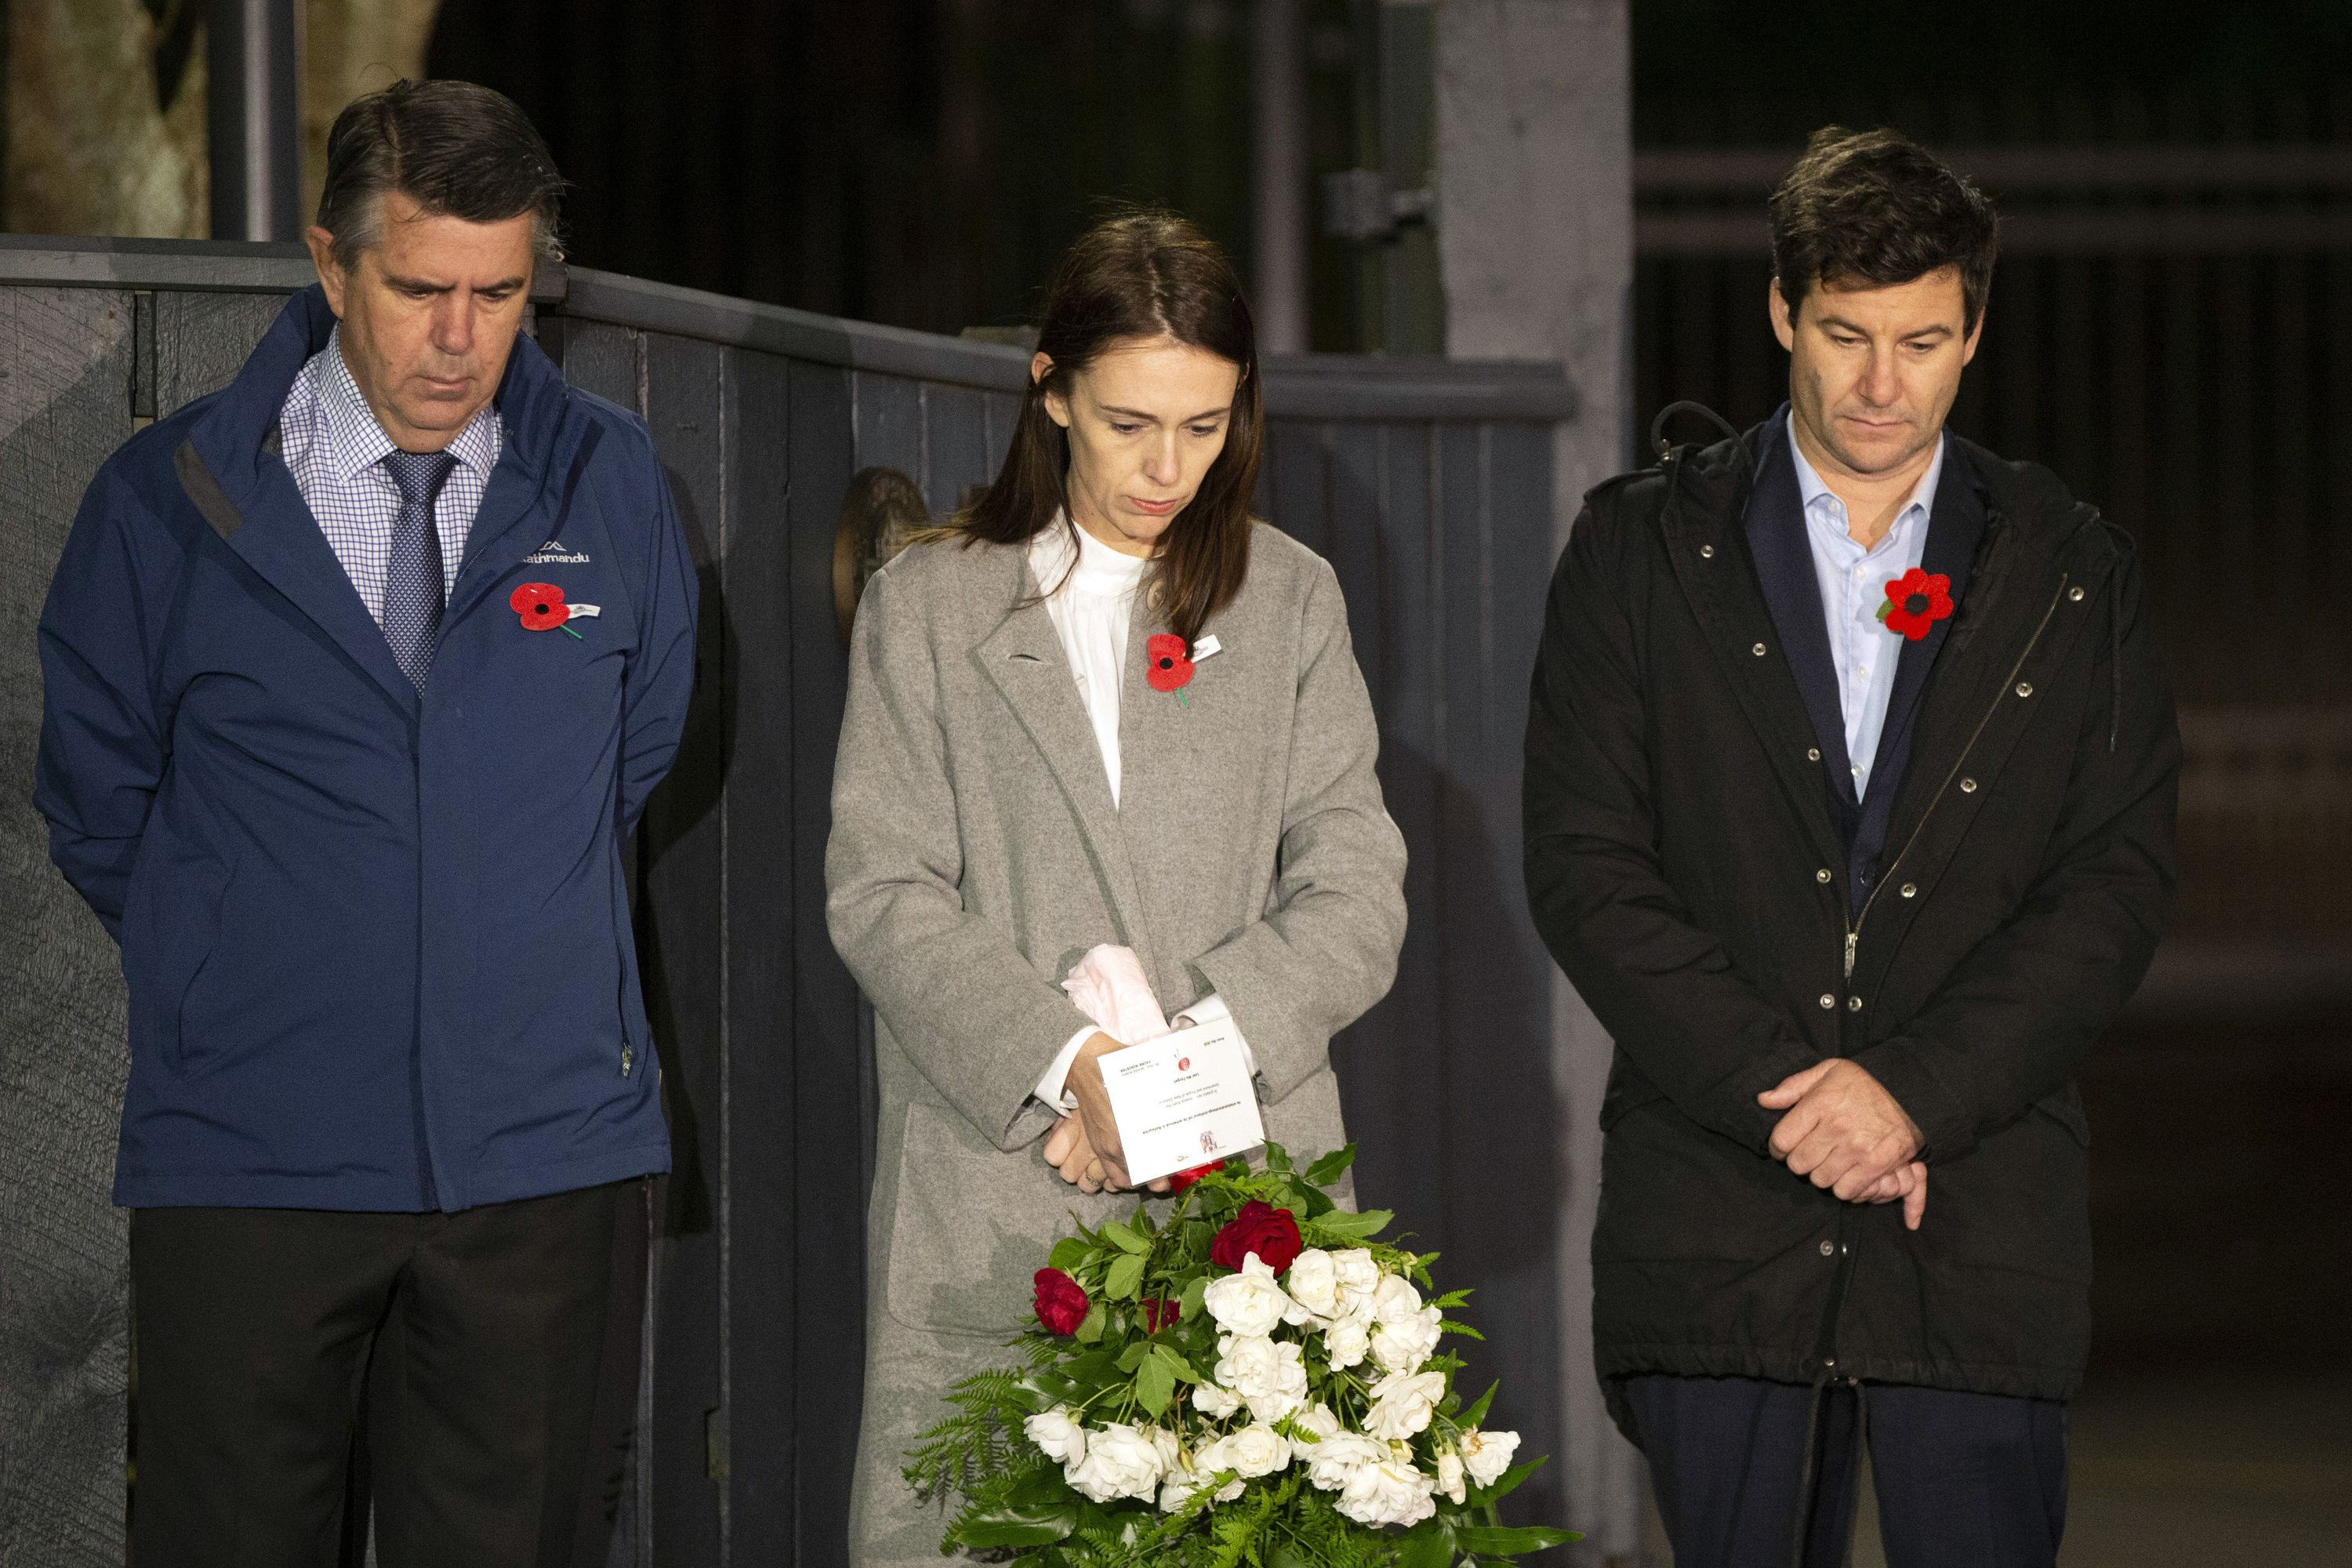 New Zealand Prime Minister Jacinda Ardern, center, with her father Ross Ardern, left, and partner Clarke Gayford stand outside Premier House in Wellington to mark Anzac Day on April 25.